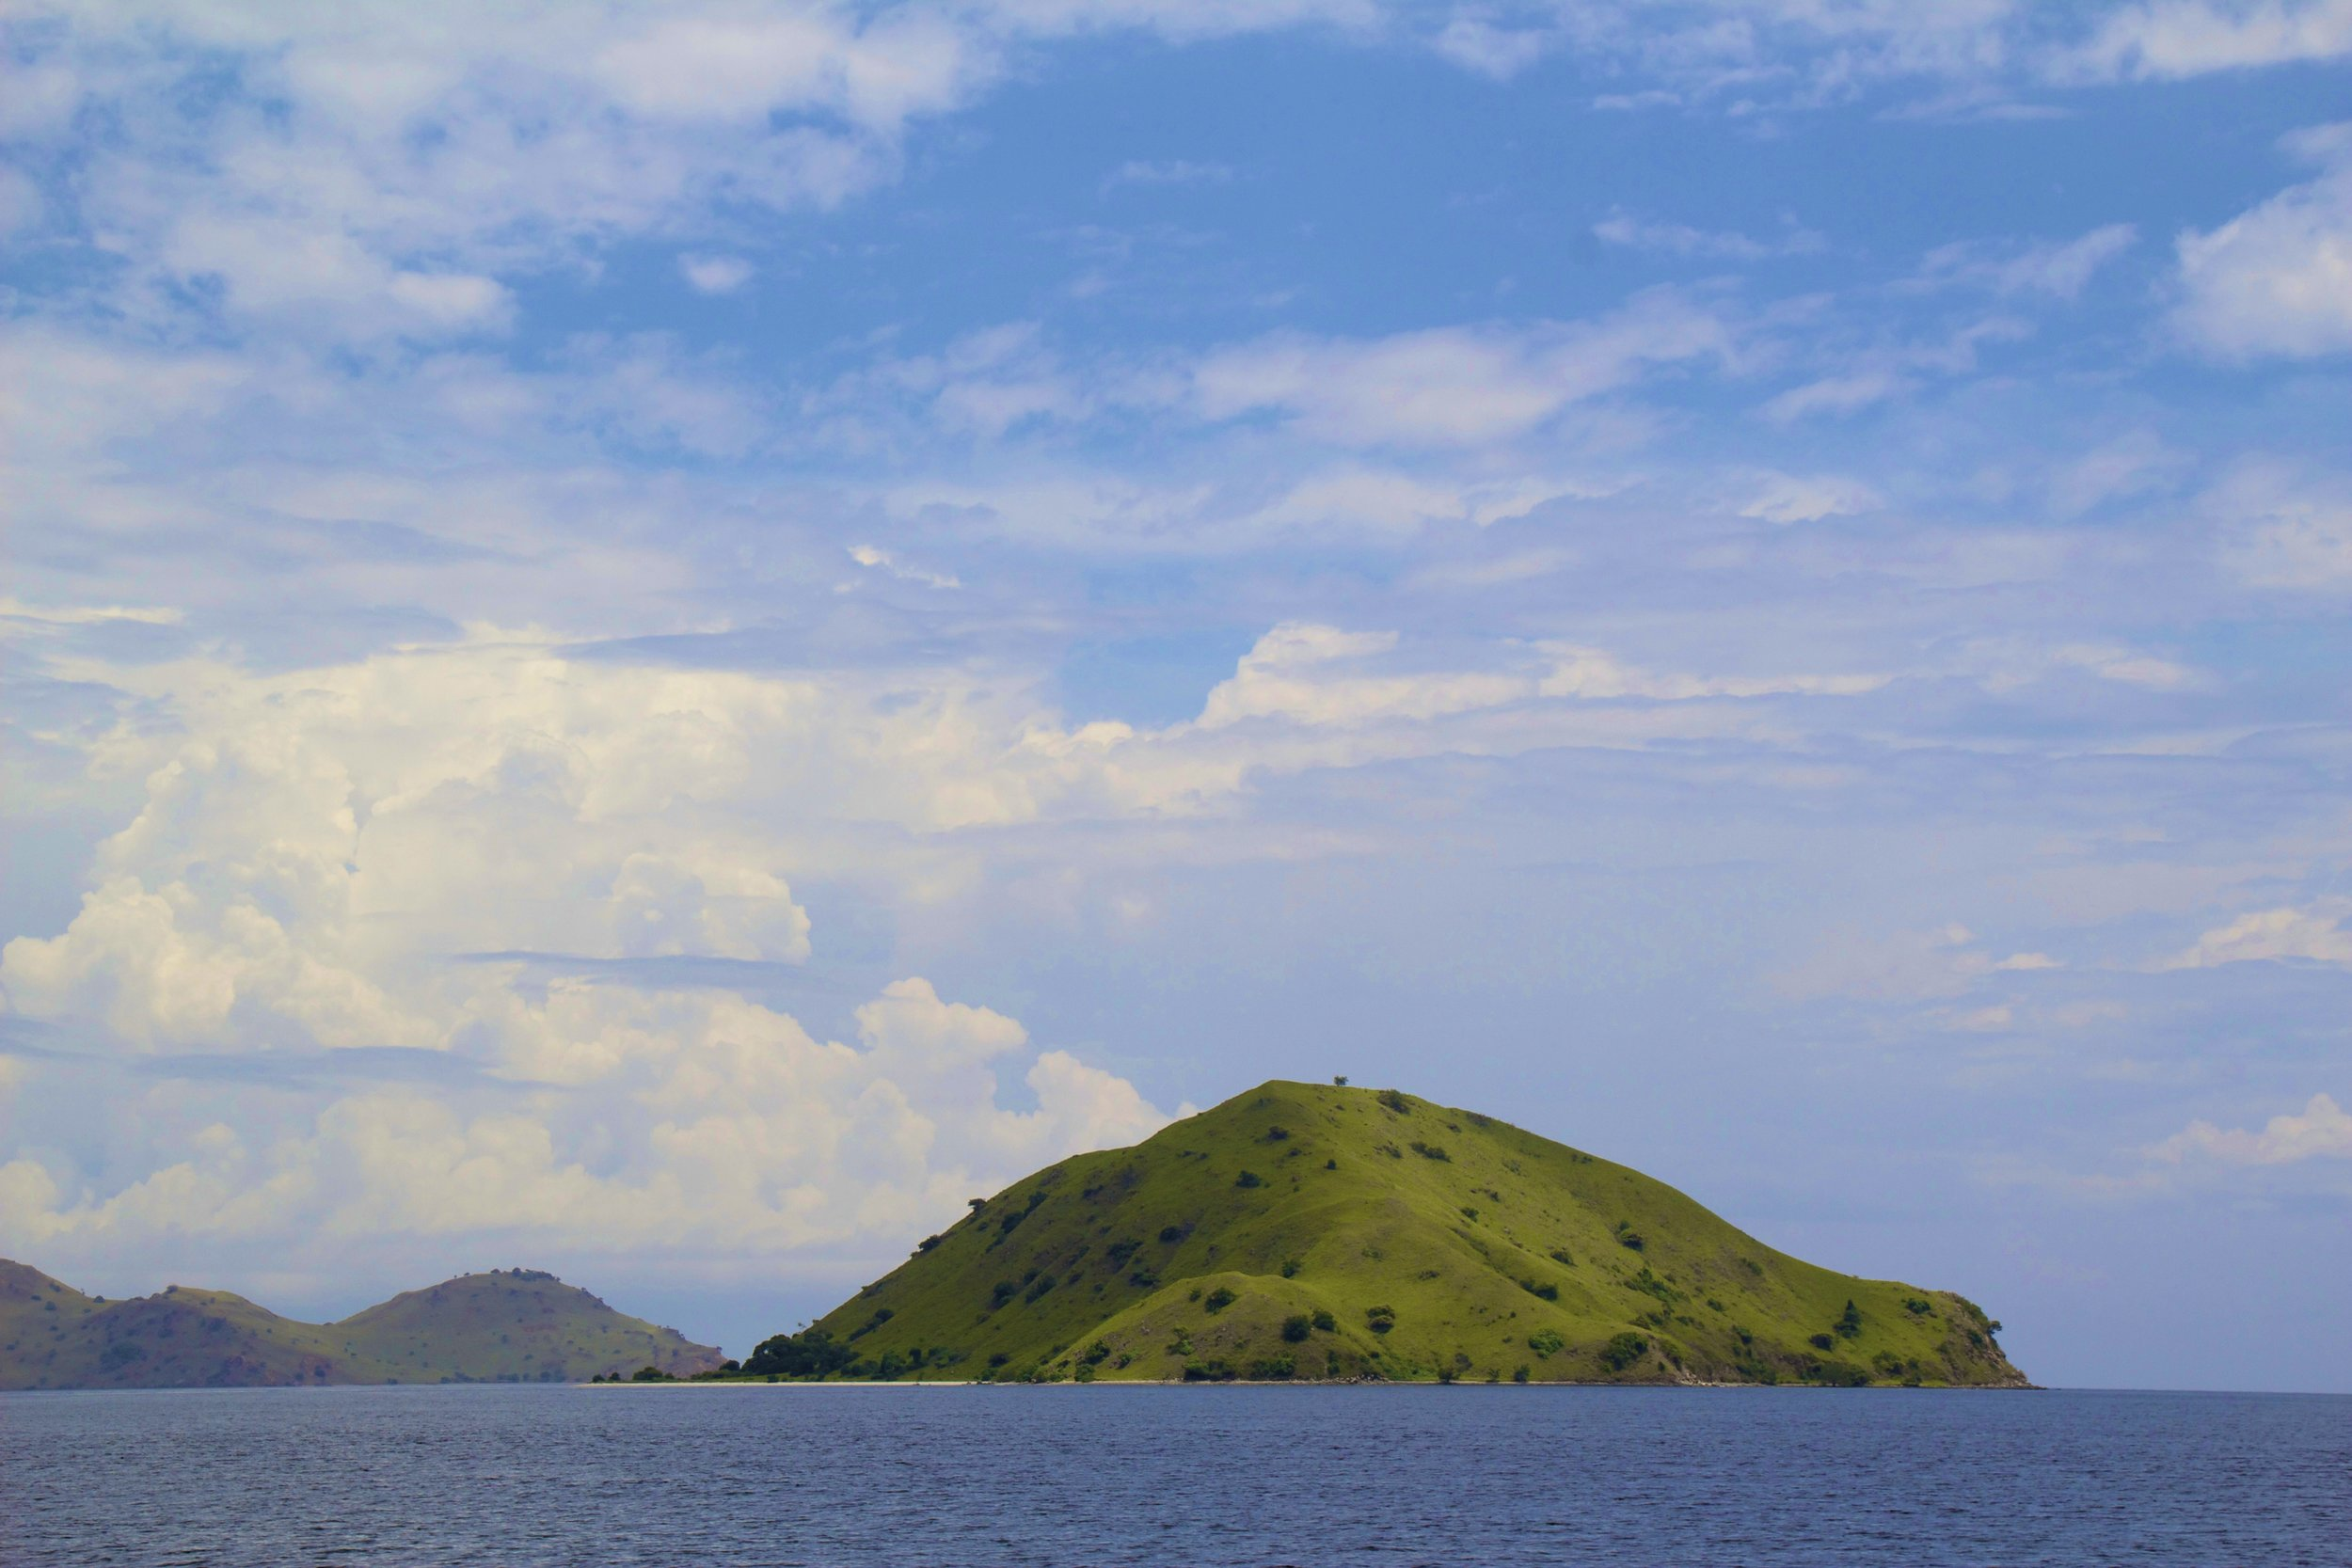 komodo islands flores indonesia 3.jpg